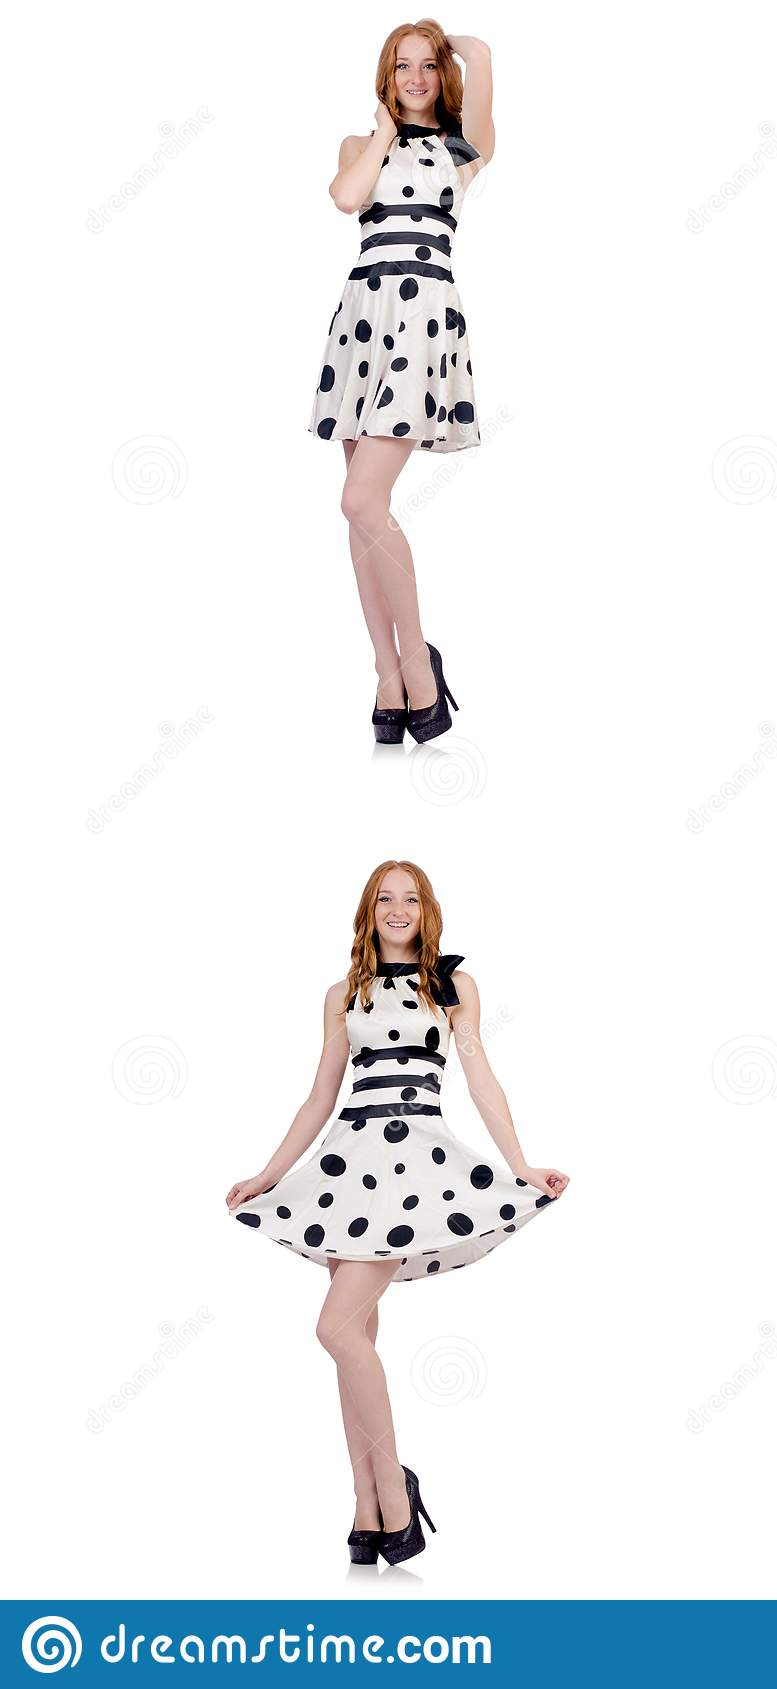 The young woman in polka dot dress isolated on white